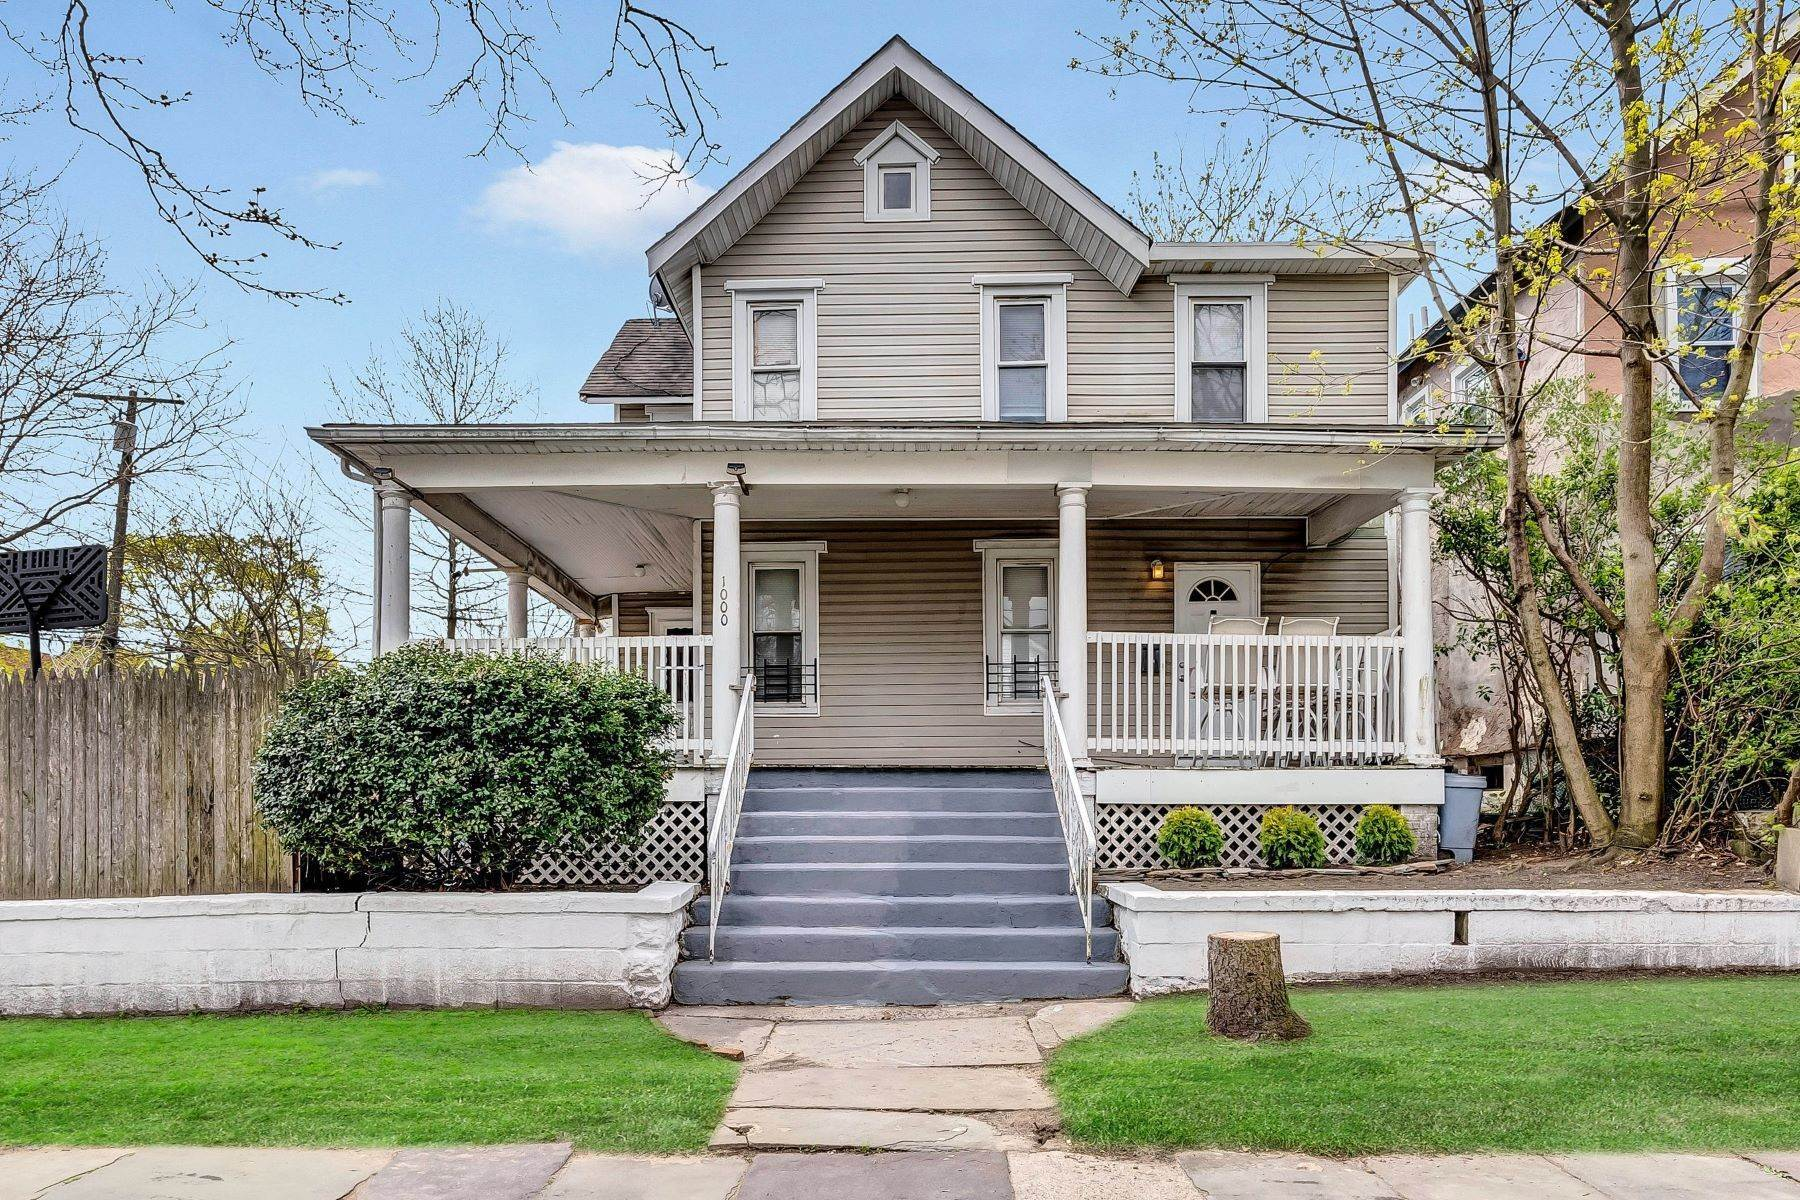 Multi-Family Homes for Sale at Great Two Family Home 1000 Summerfield Avenue Asbury Park, New Jersey 07712 United States